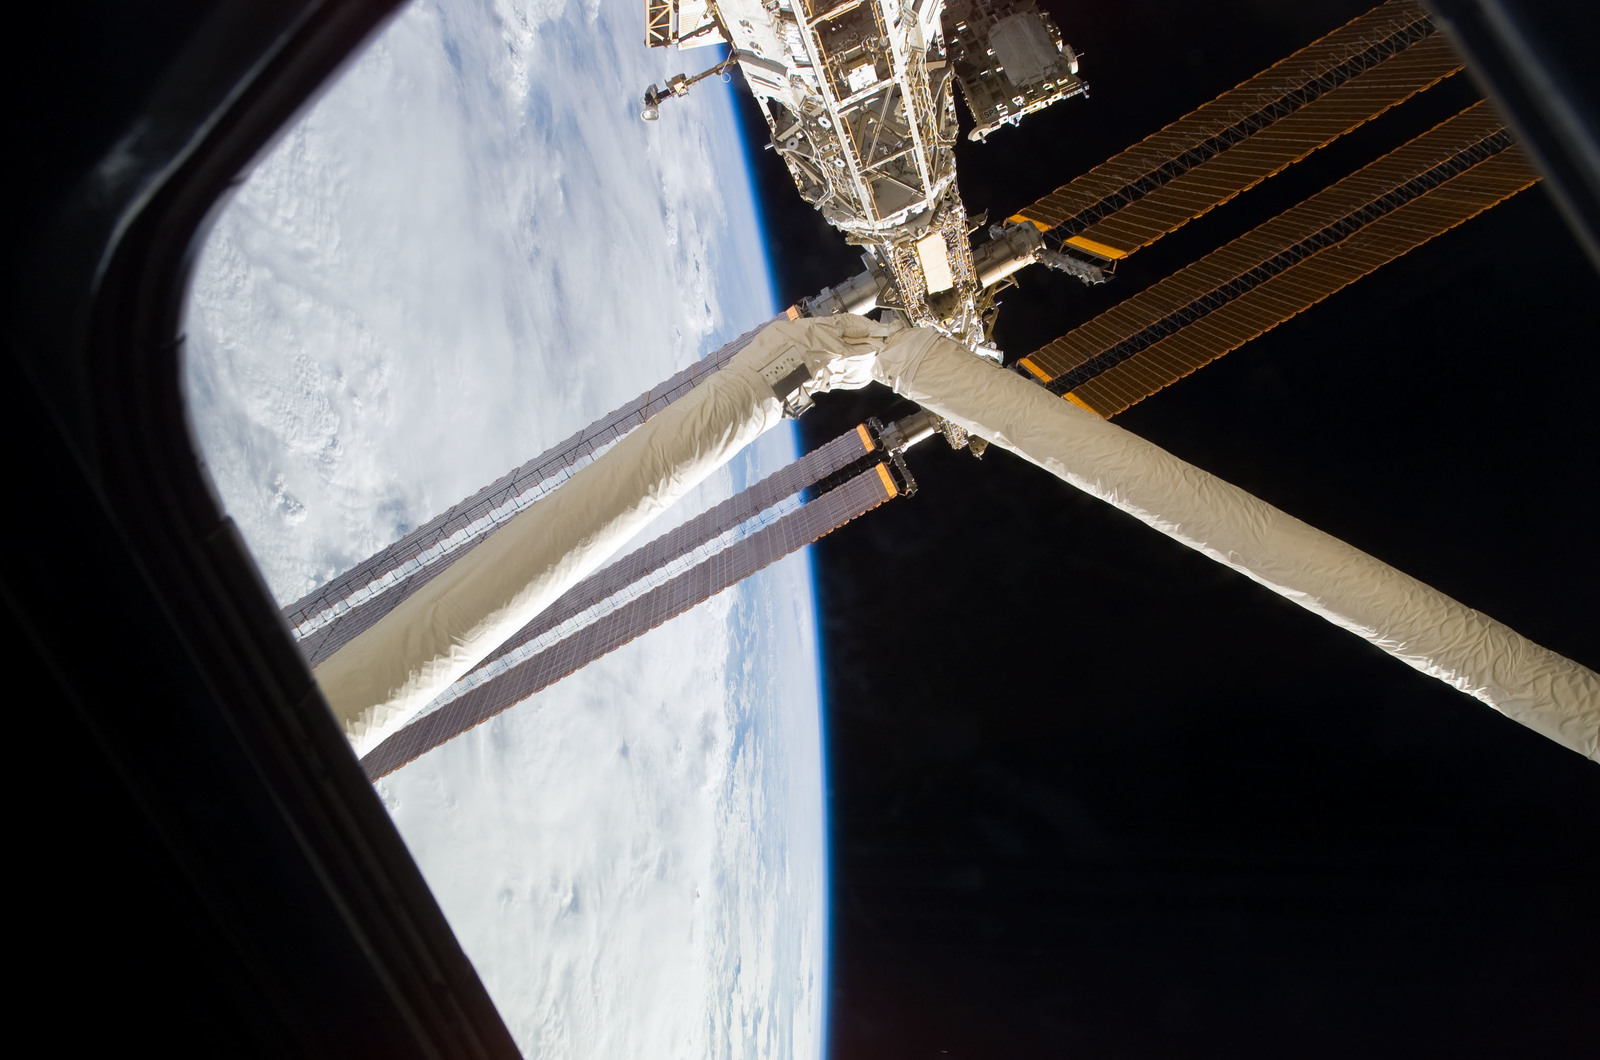 S123E008222 - STS-123 - RMS/SSRMS and Solar Arrays taken during Joint Operations